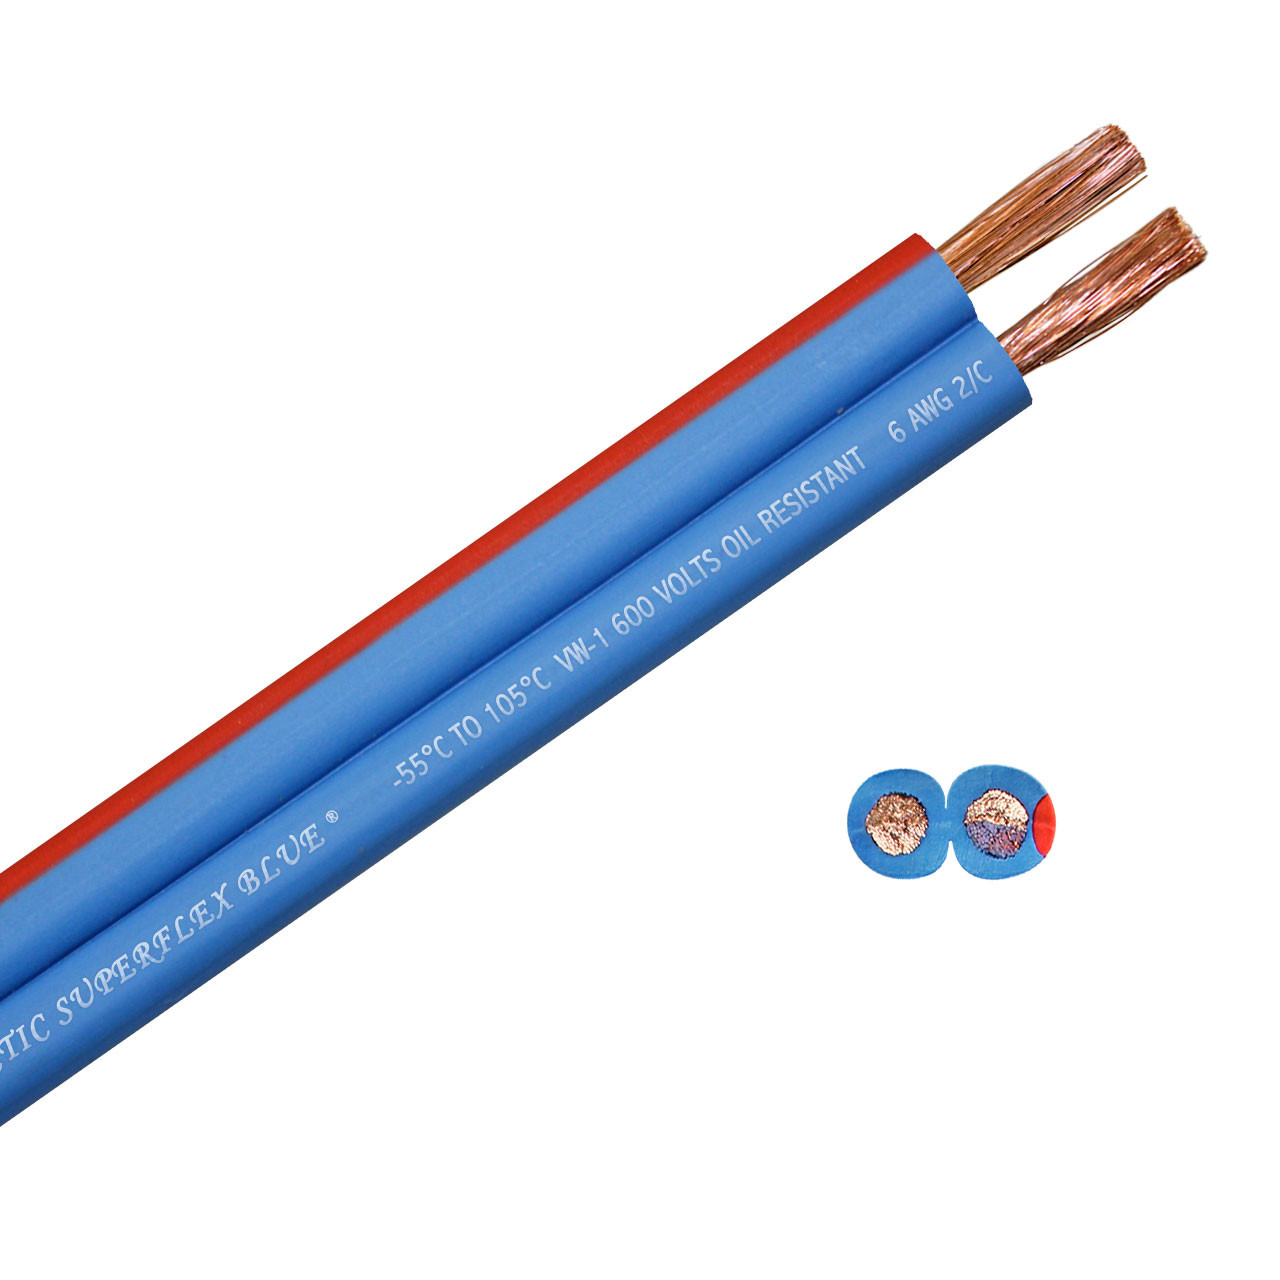 Arctic Superflex Blue 6 gauge wire - 100% copper fine strand twin conductors